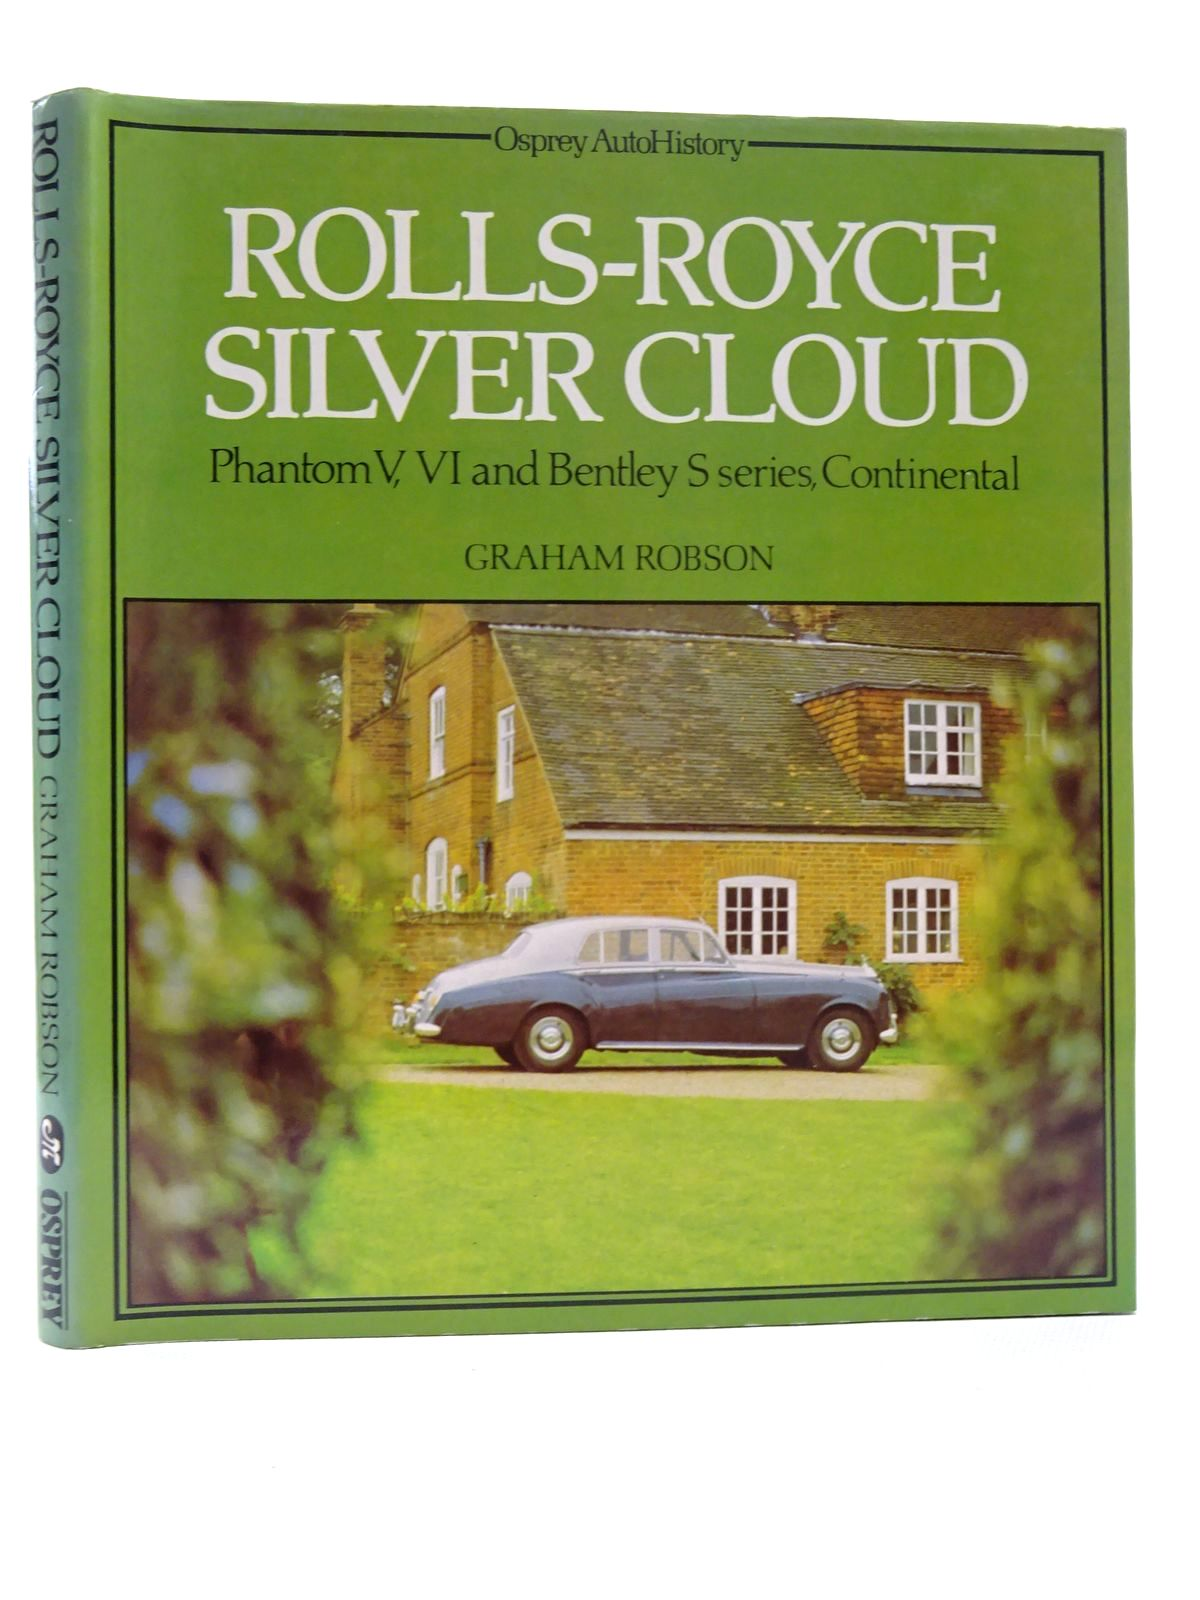 Photo of ROLLS-ROYCE SILVER CLOUD PHANTOM V, VI AND BENTLEY S SERIES, CONTINENTAL written by Robson, Graham published by Osprey Publishing (STOCK CODE: 2124721)  for sale by Stella & Rose's Books